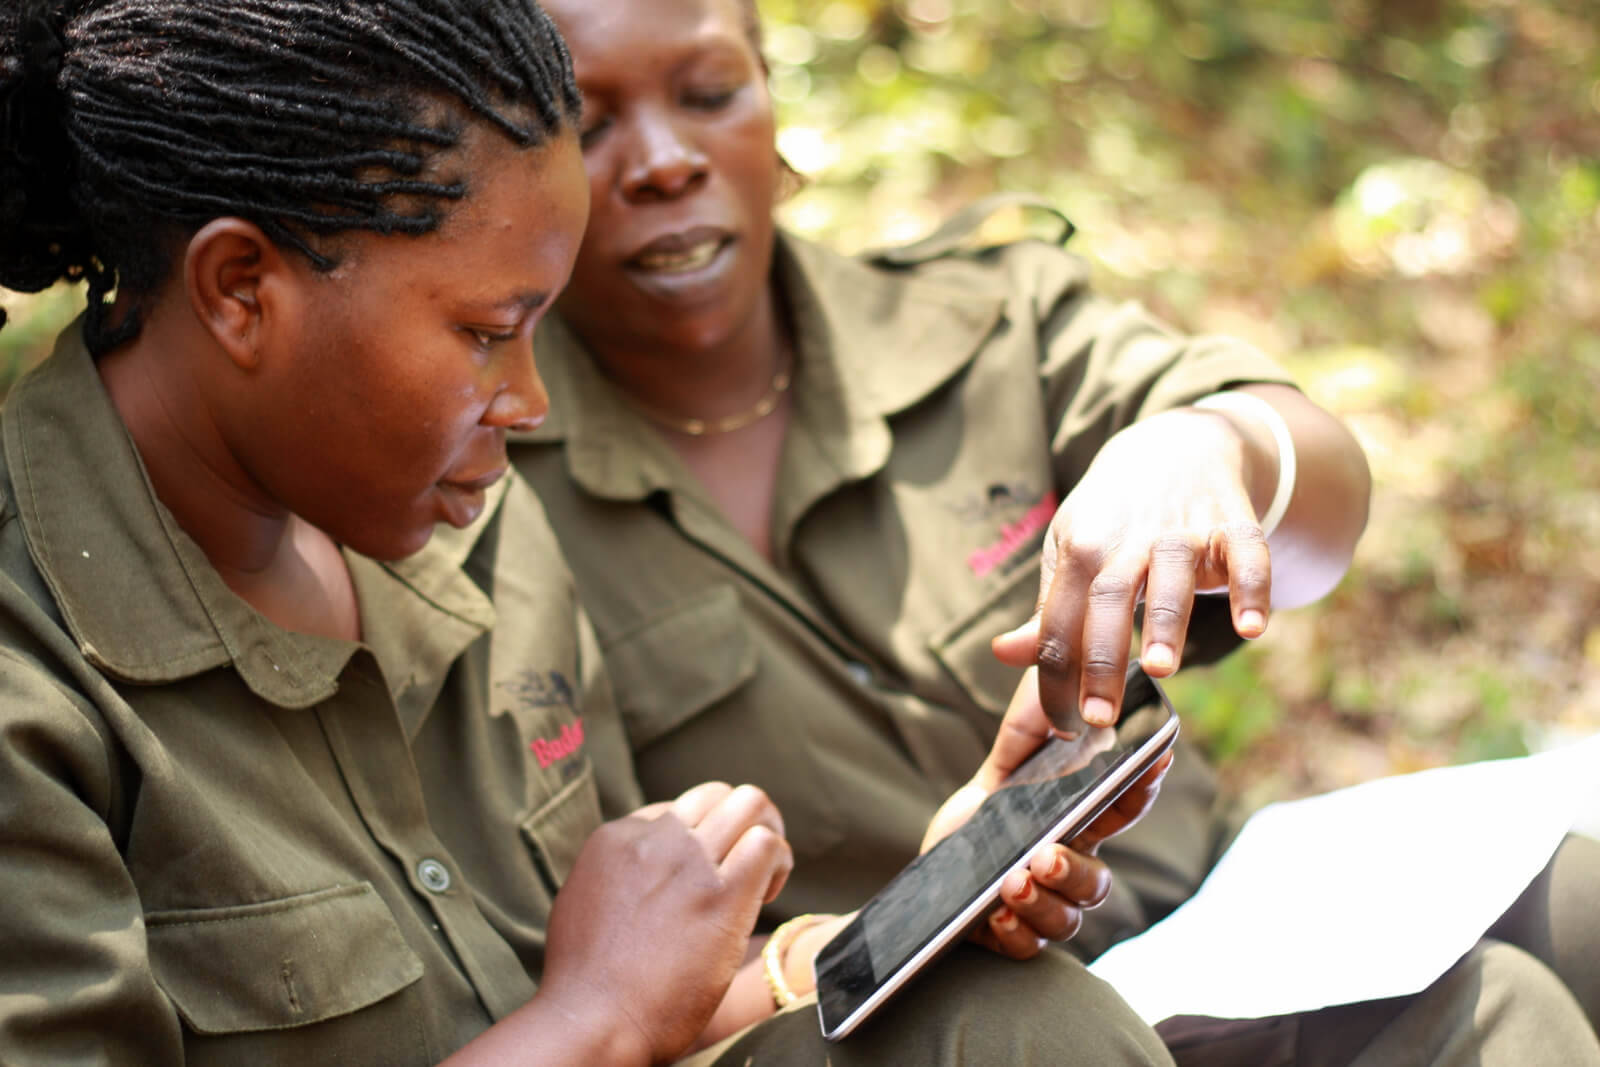 Jane Goodall Institute: Mobile Innovation for Tracking Deforestation